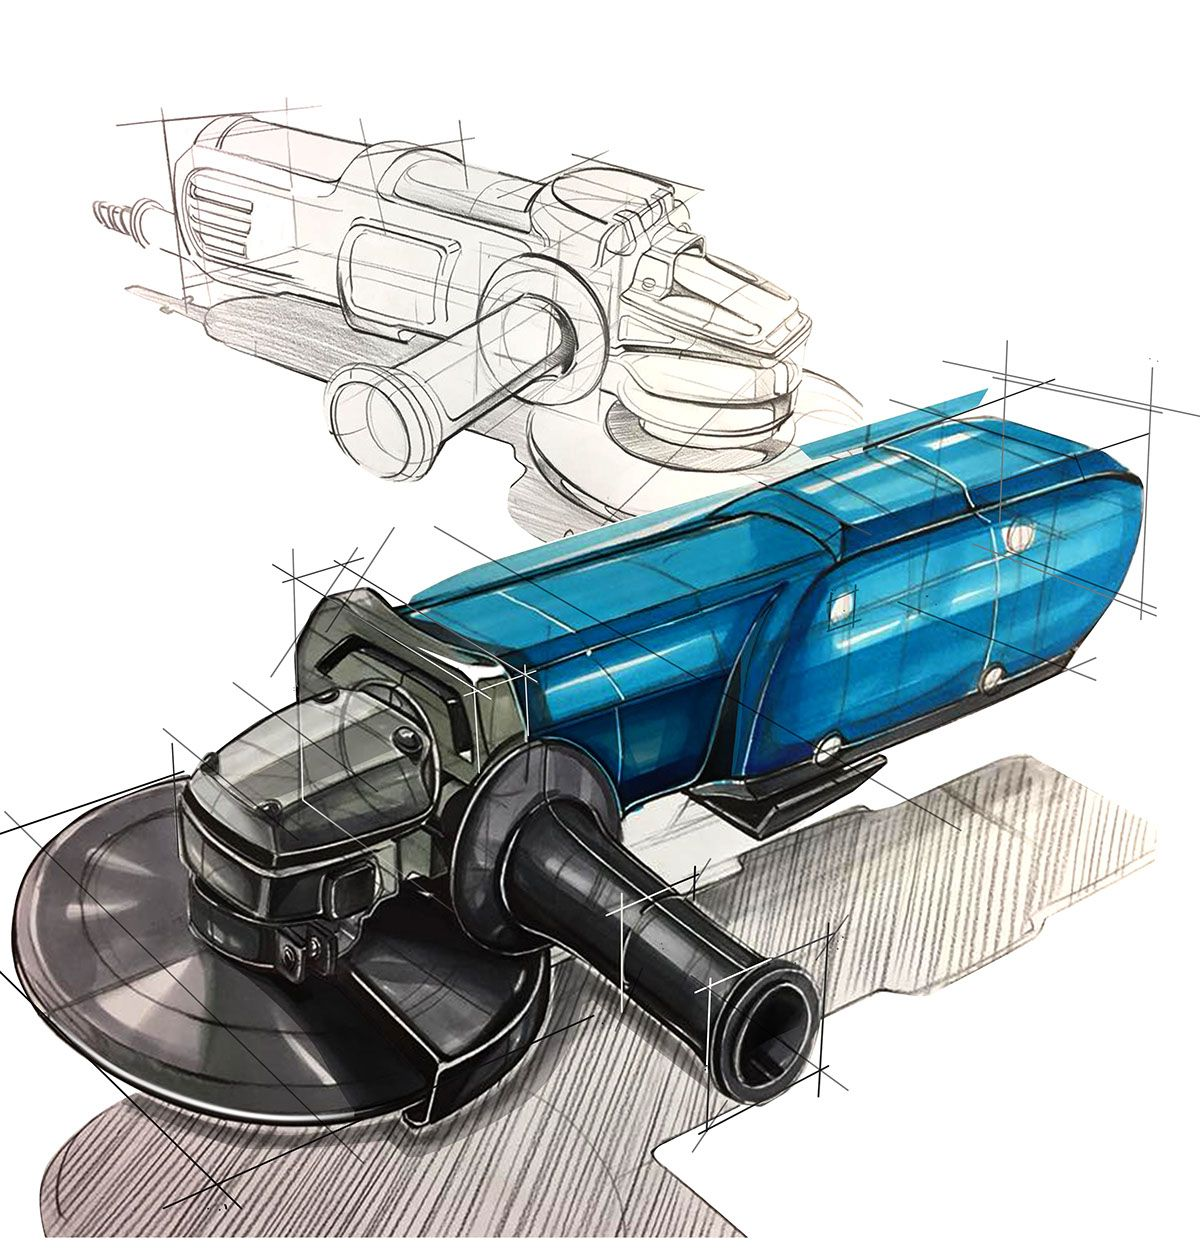 Industrail Design Sketch & Marker Rendering Tutorial On